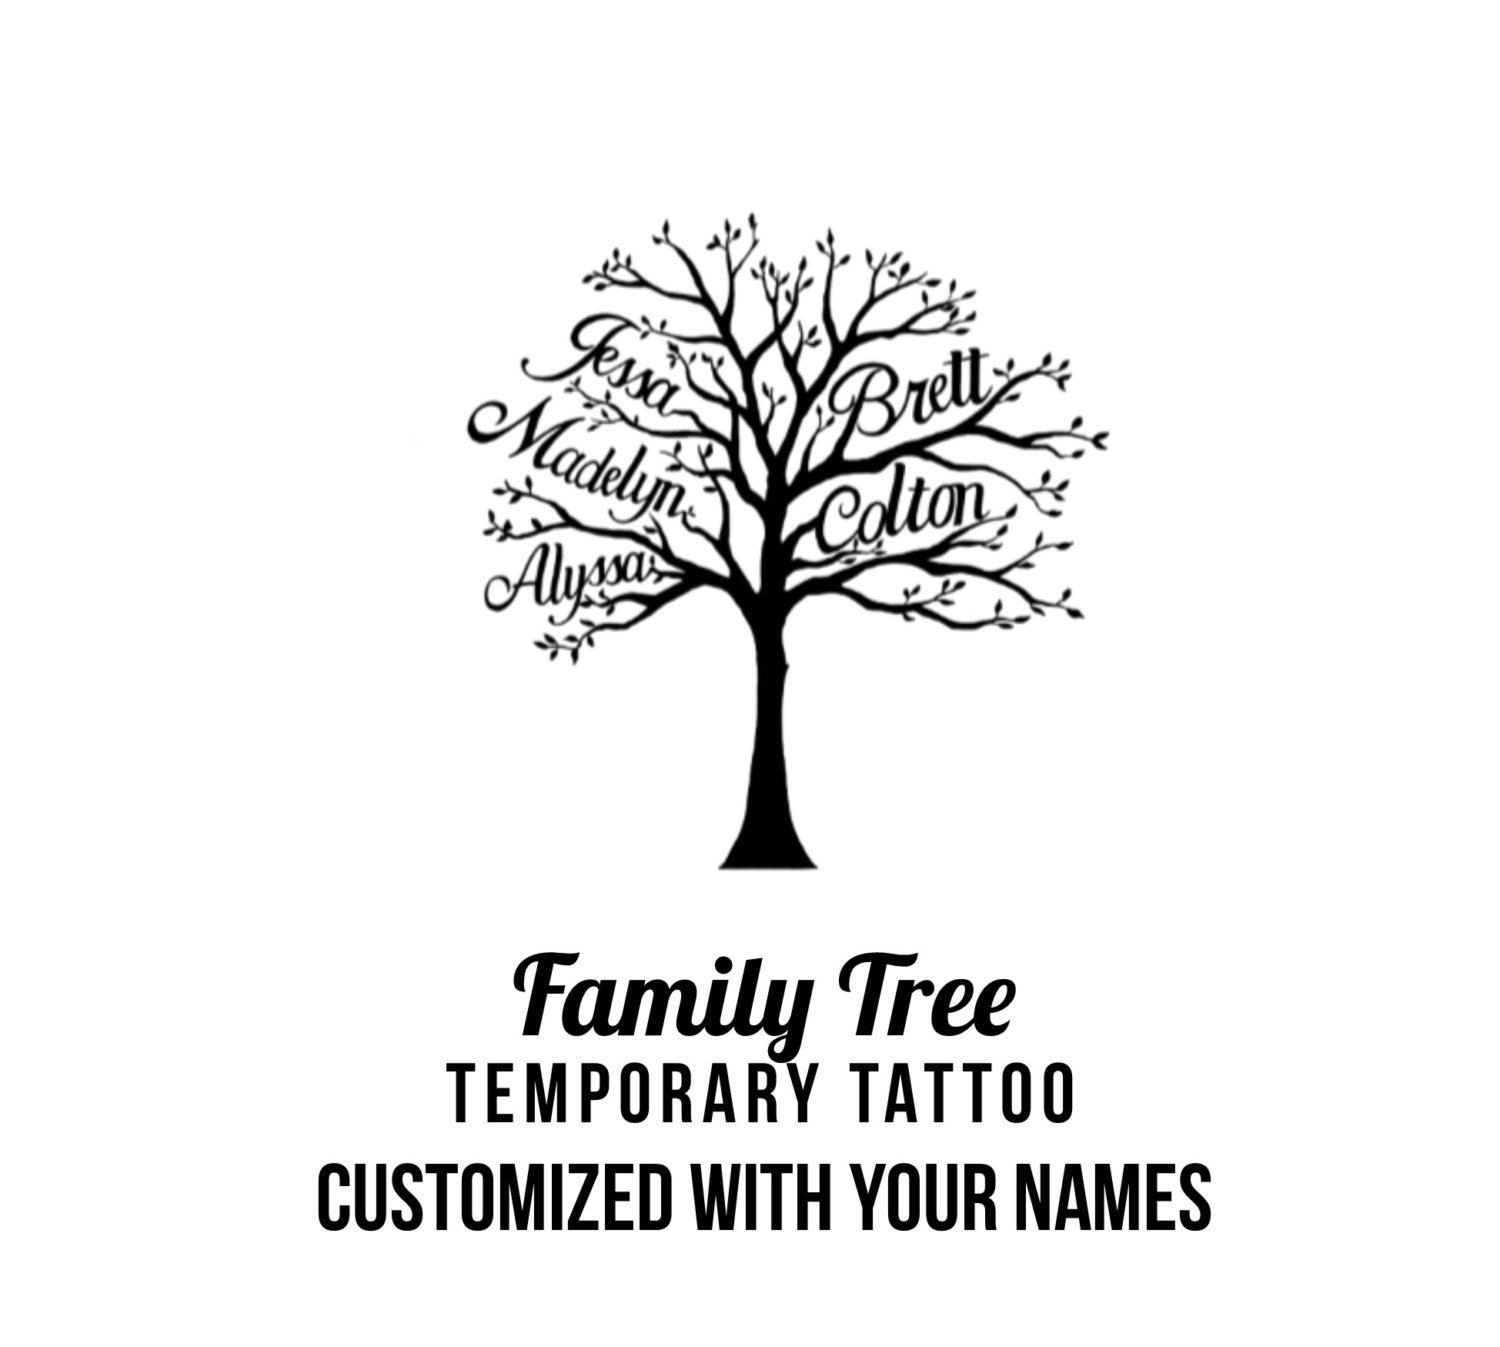 Custom Family Tree With Names Temporary Tattoo By Pepperink Bad